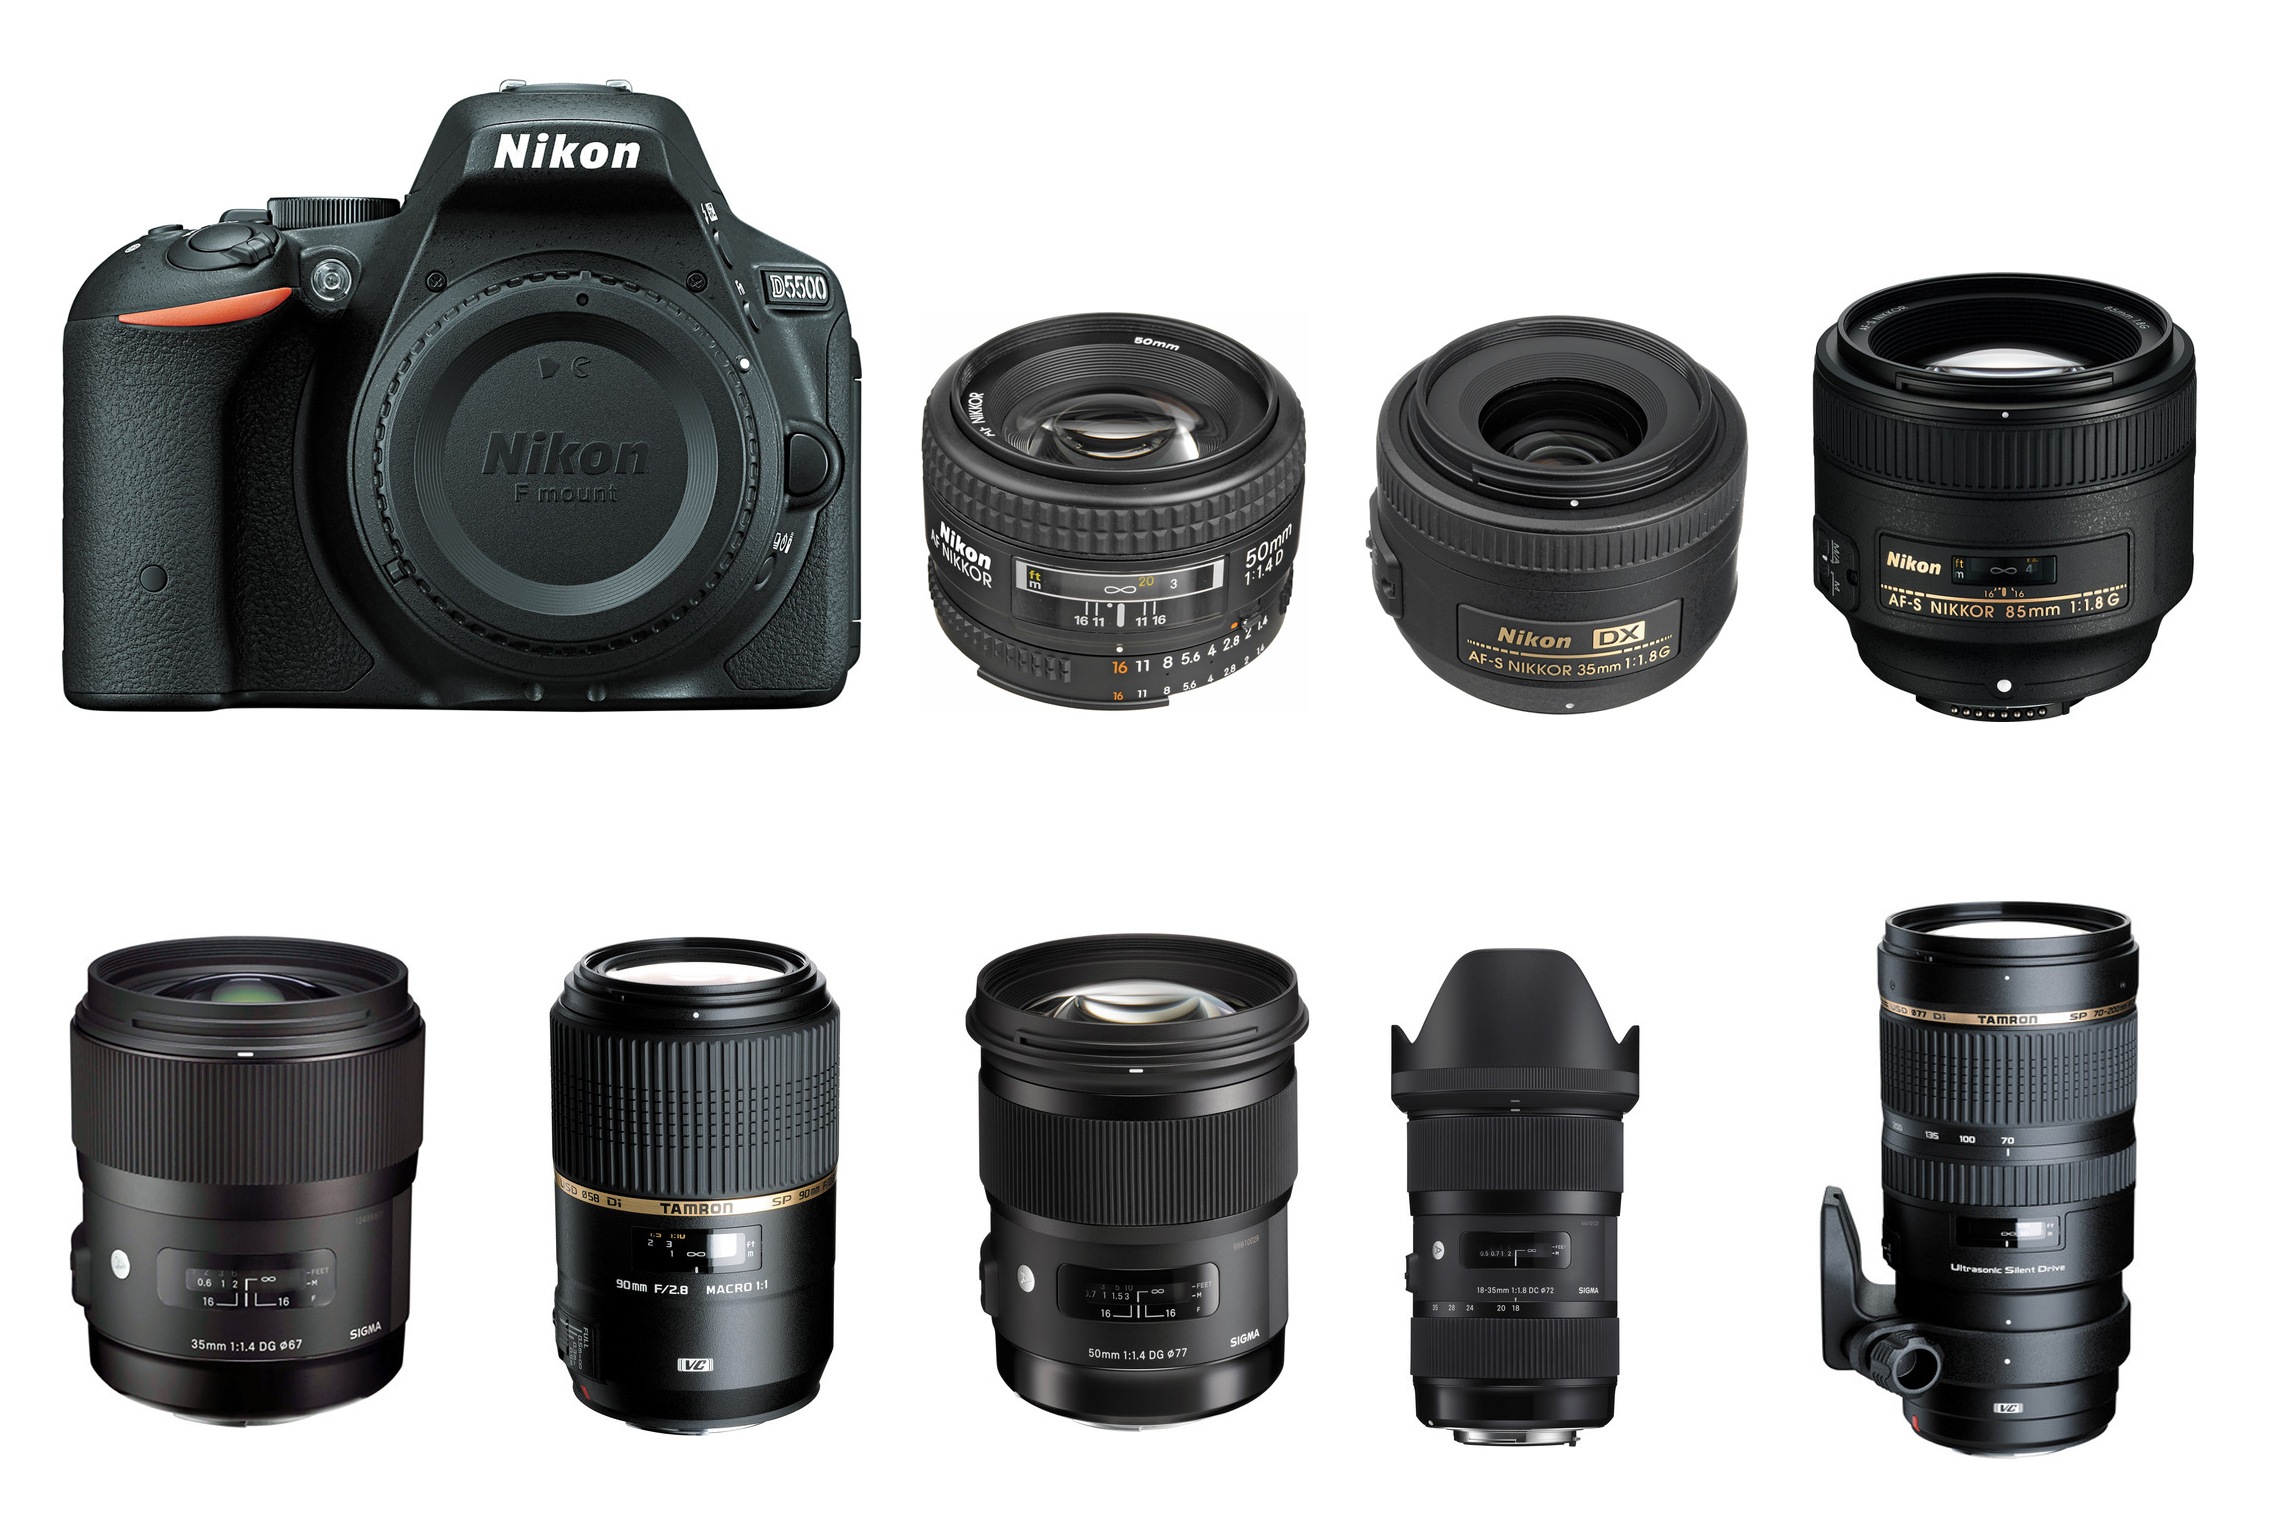 Nikon D5500 Vs D7200 >> Nikon D5500 | Camera News at Cameraegg